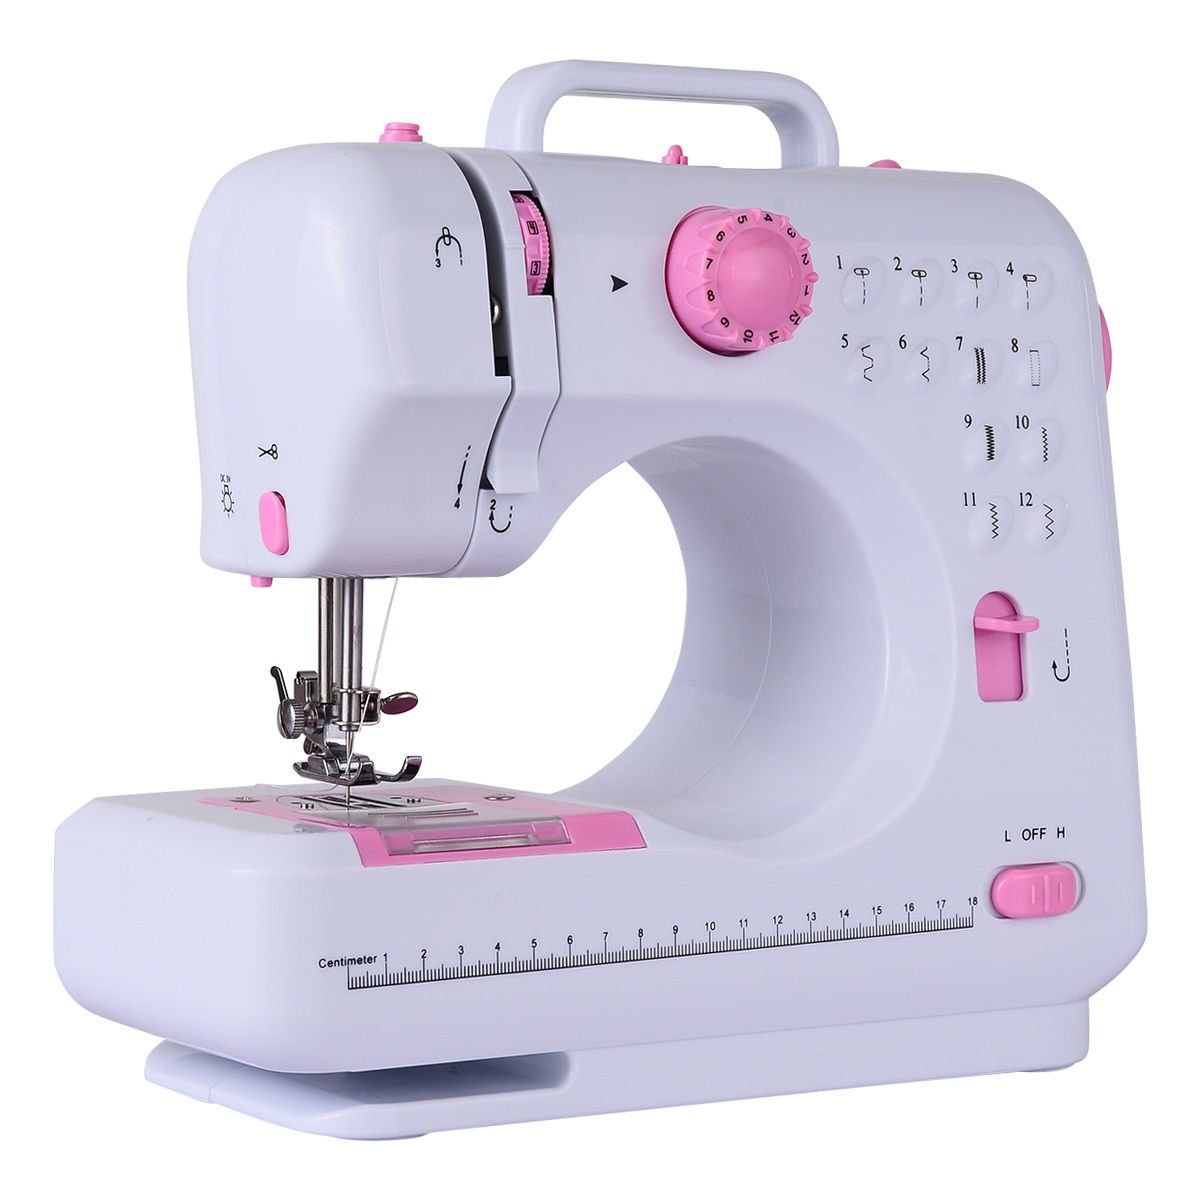 Costway Sewing Machine Household Multifunction